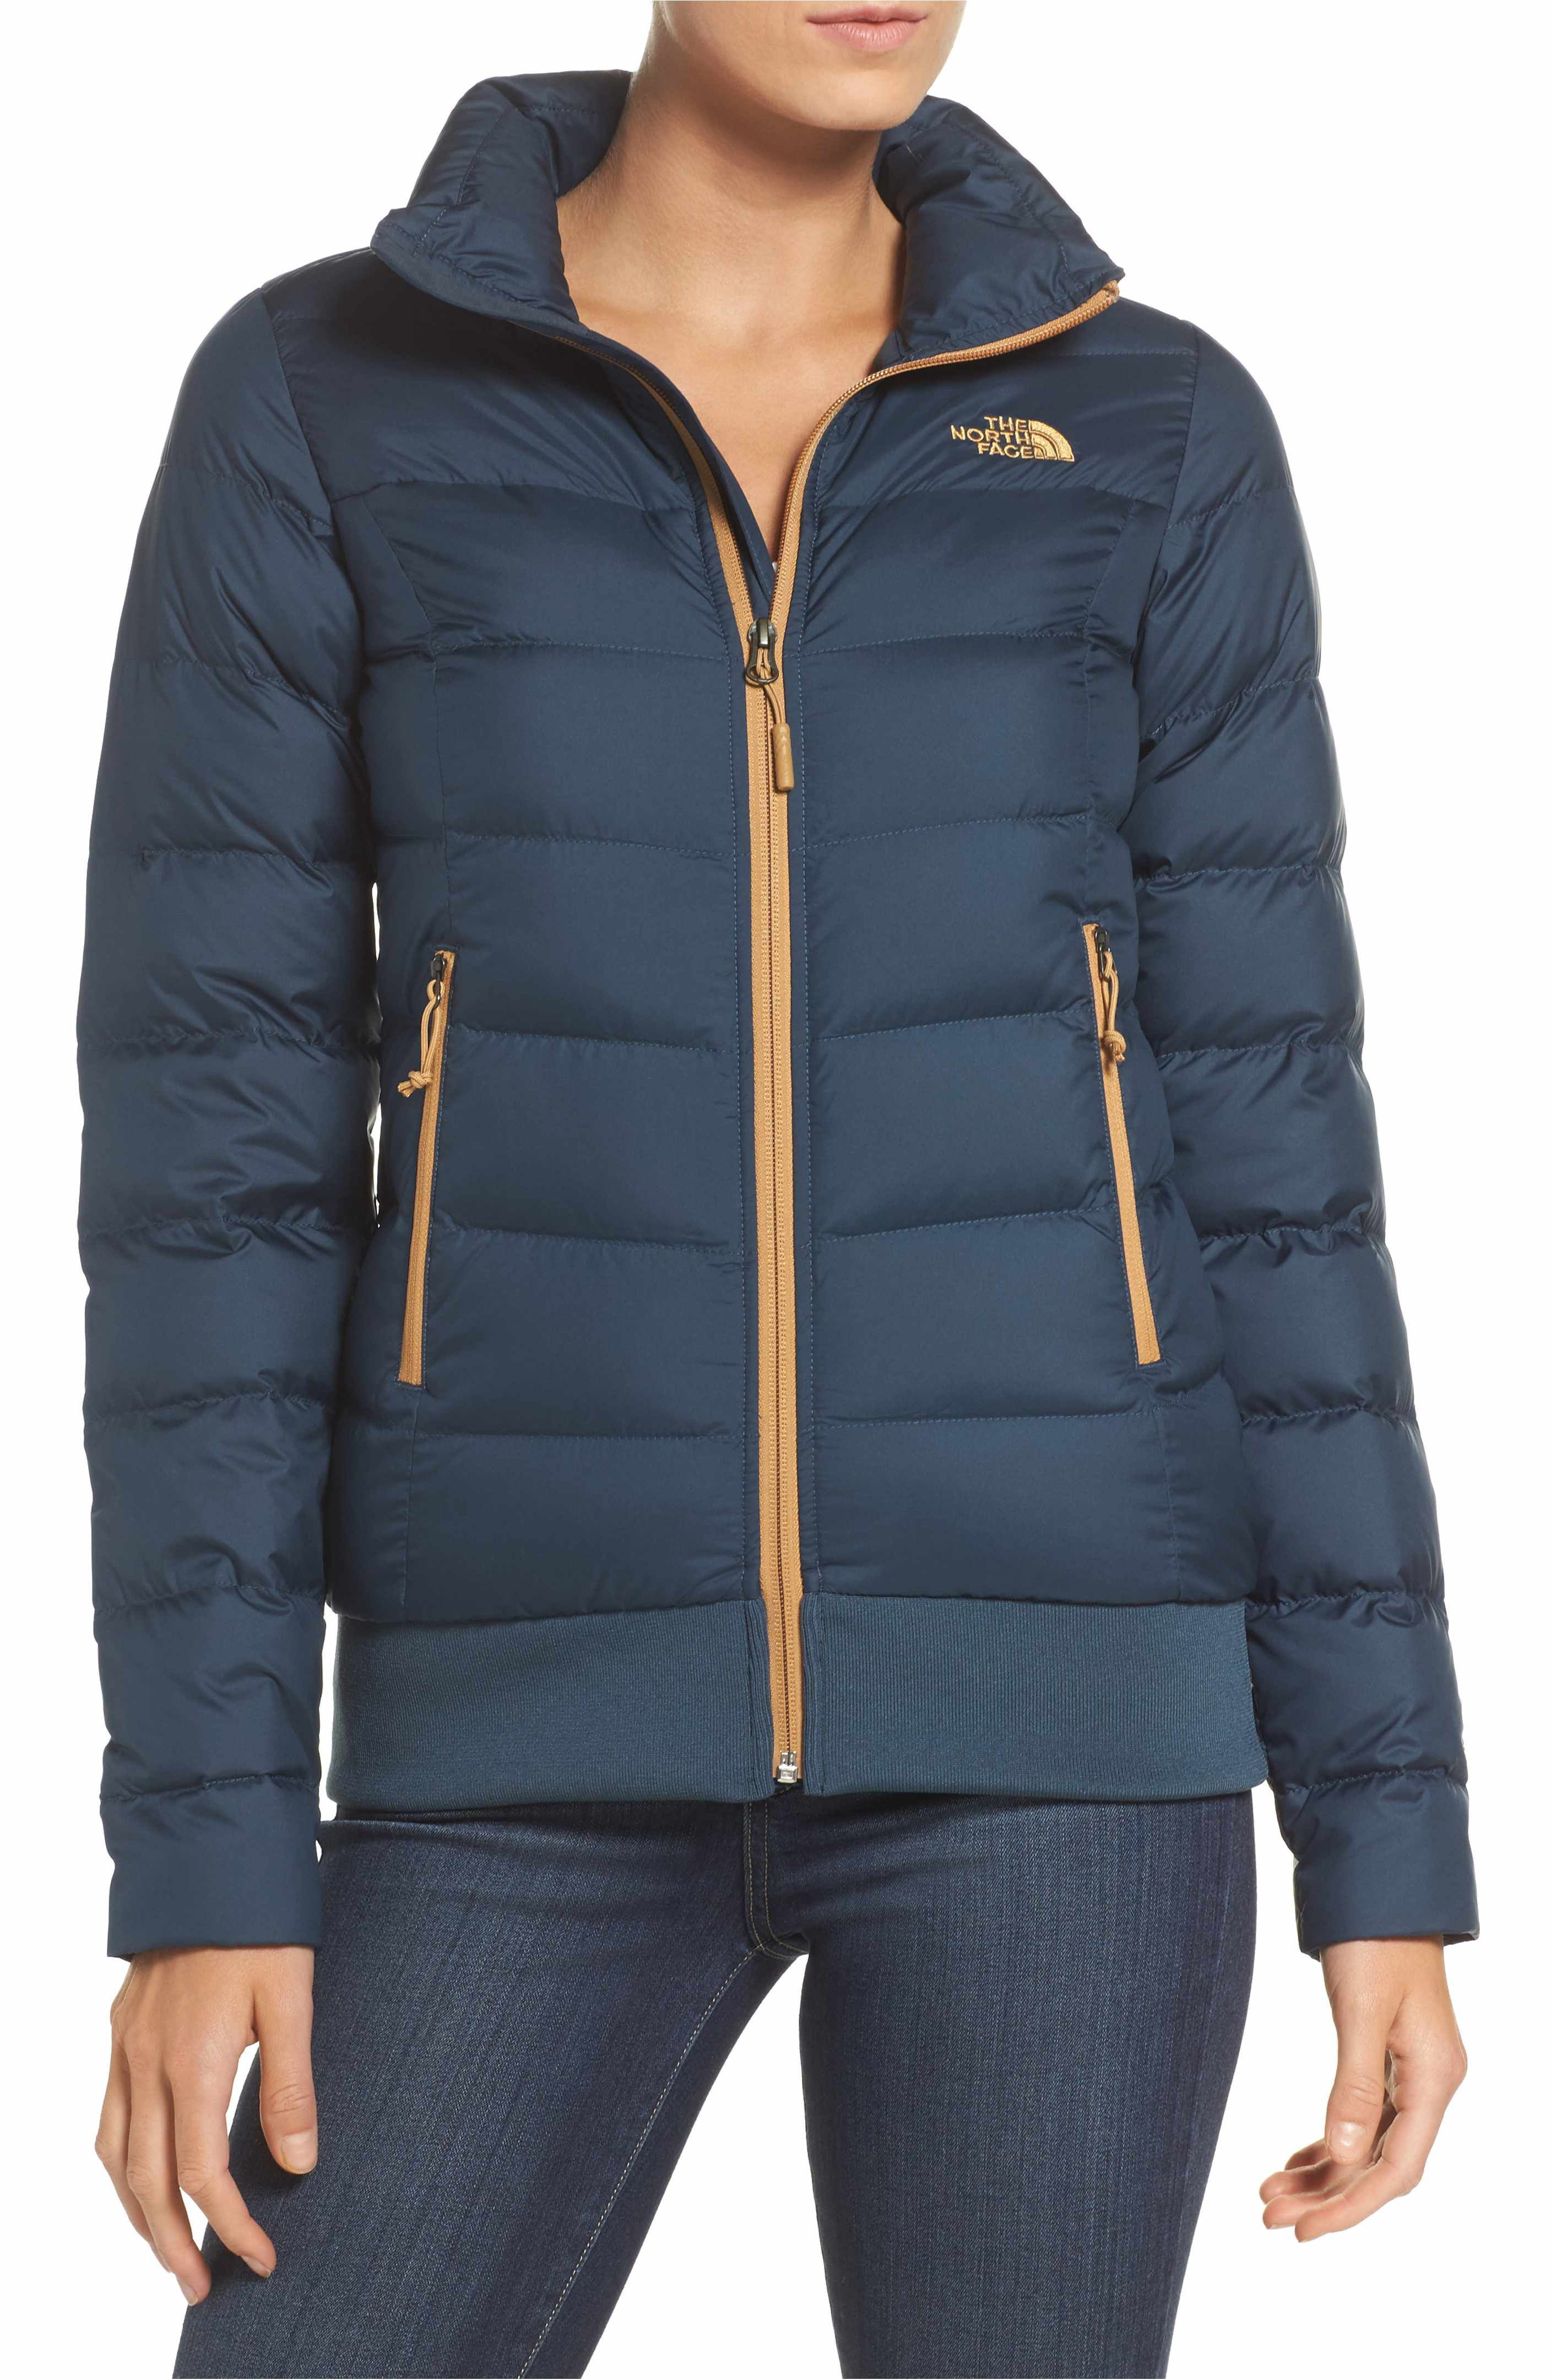 The North Face Alcott Down Jacket Nordstrom North Face Winter Coat Jackets Winter Outfits Women [ 4320 x 2816 Pixel ]